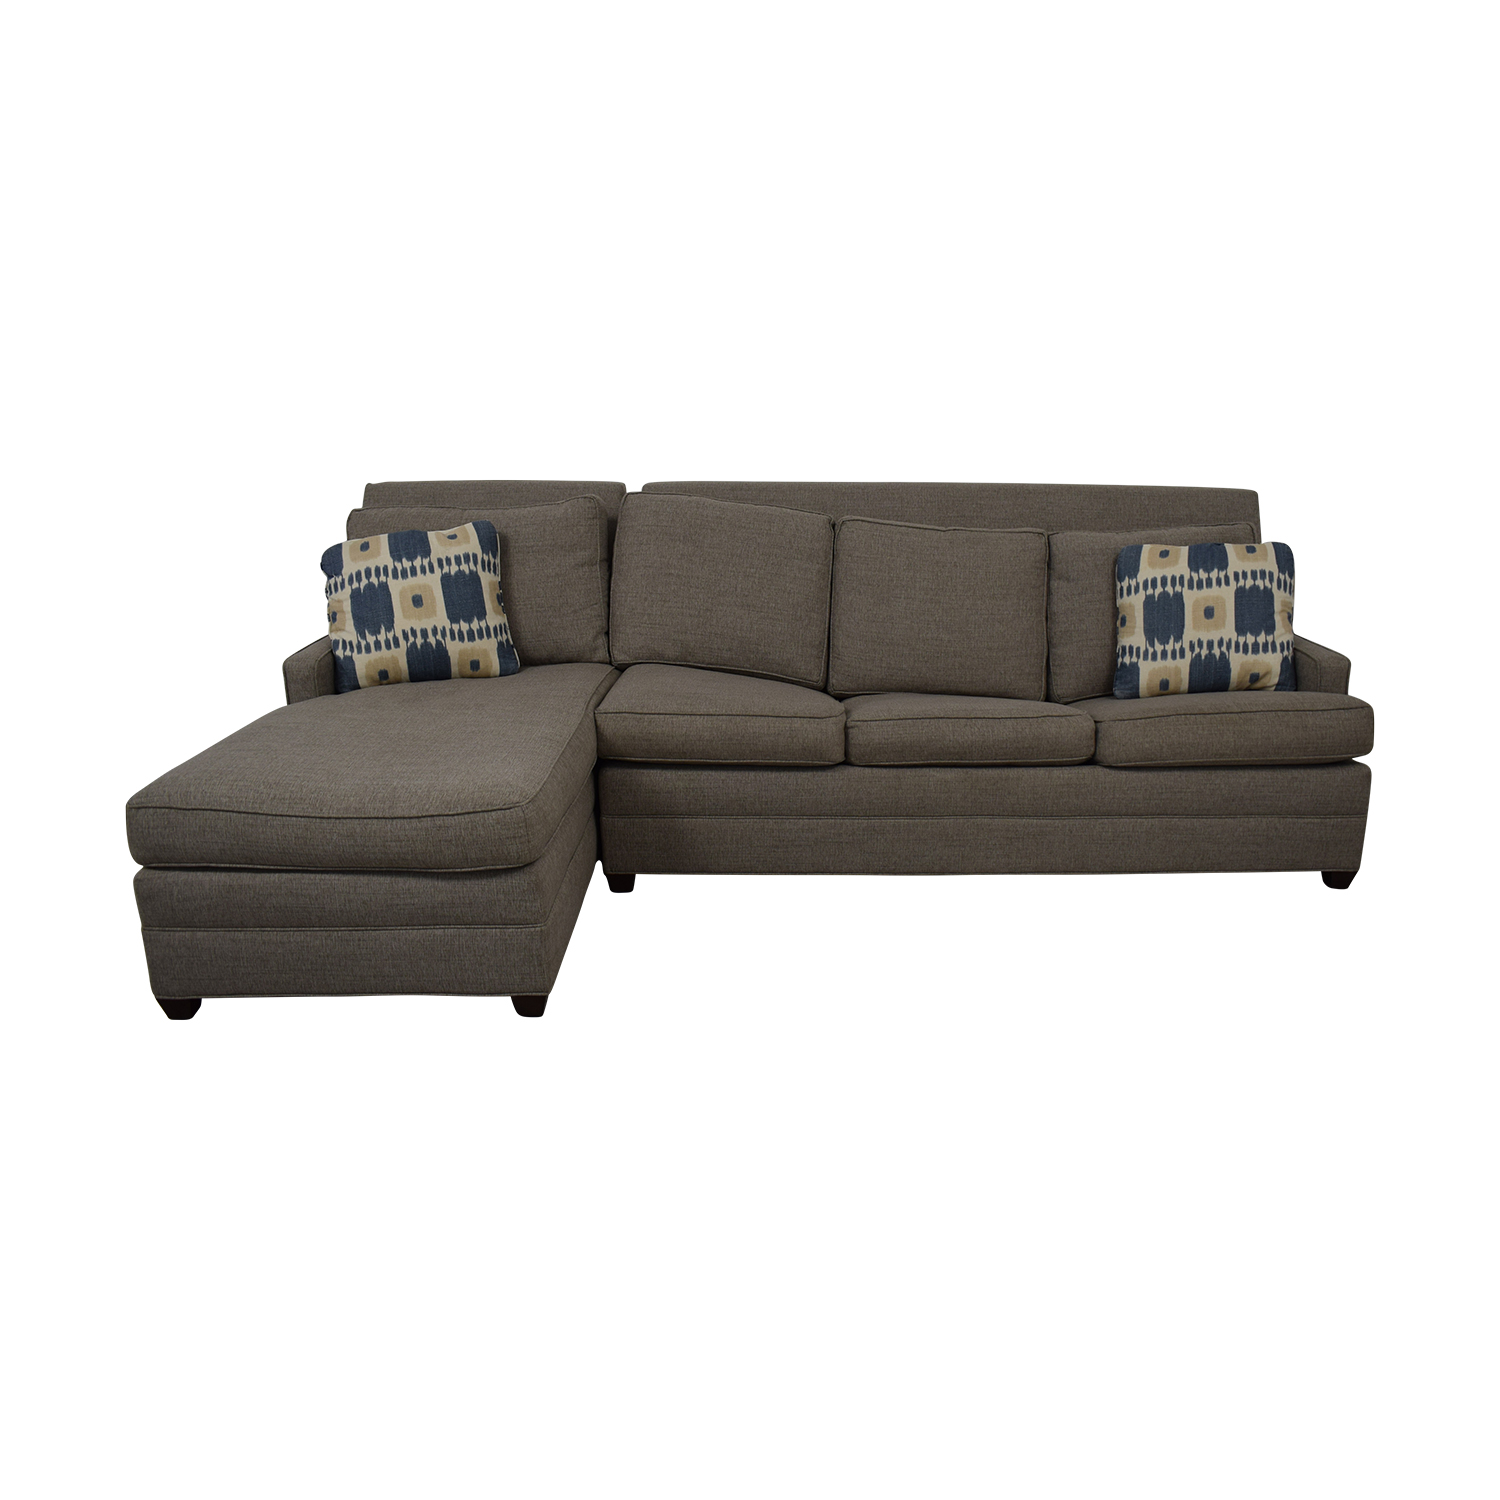 78 Off Vanguard Furniture Vanguard Furniture Left Chaise Queen